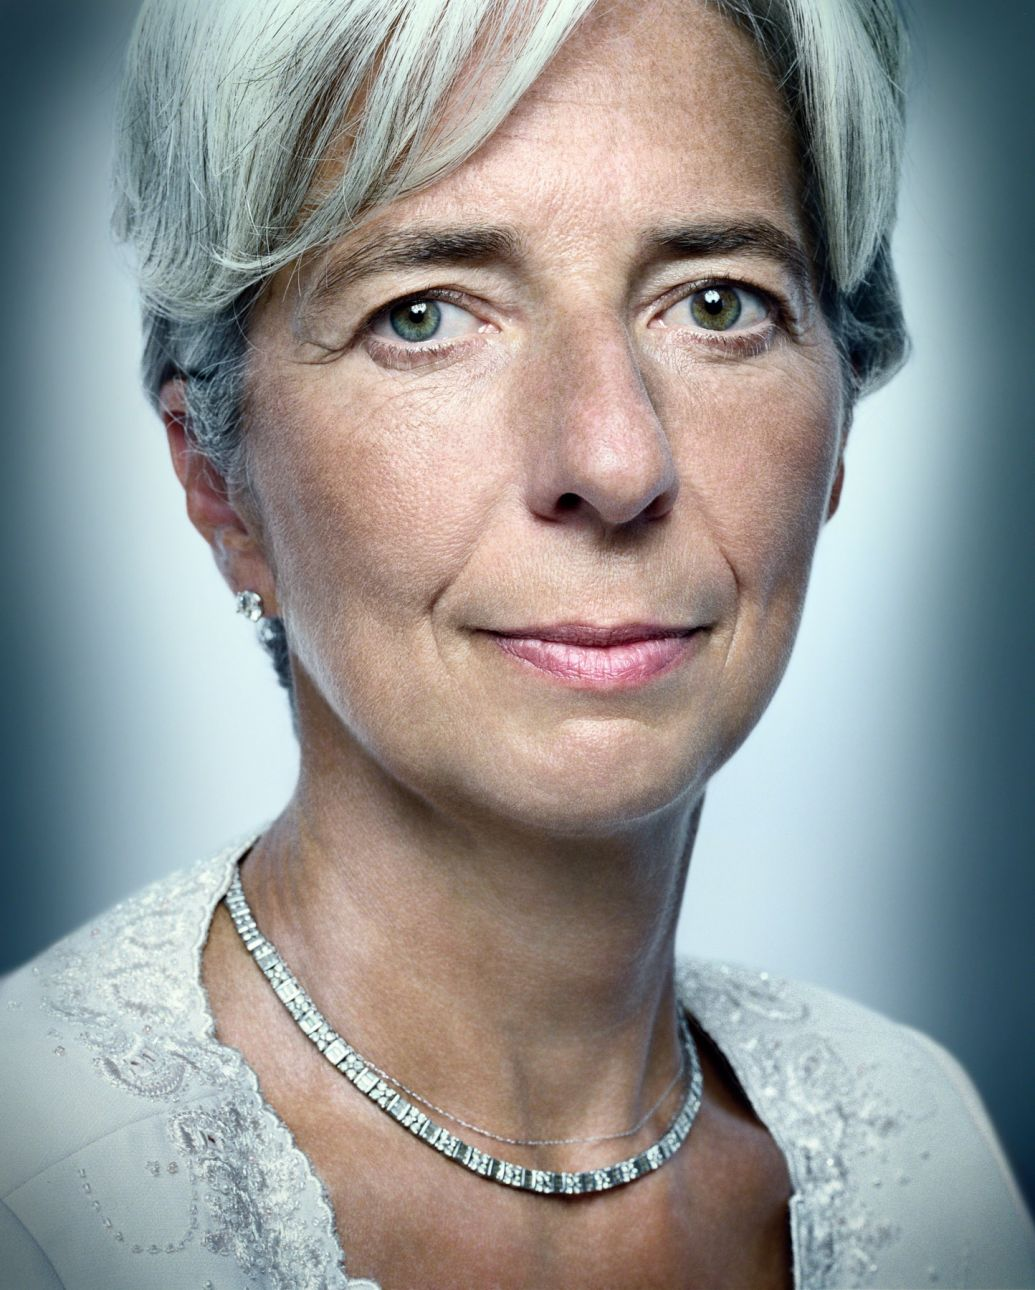 Christine Lagarde portrait photography